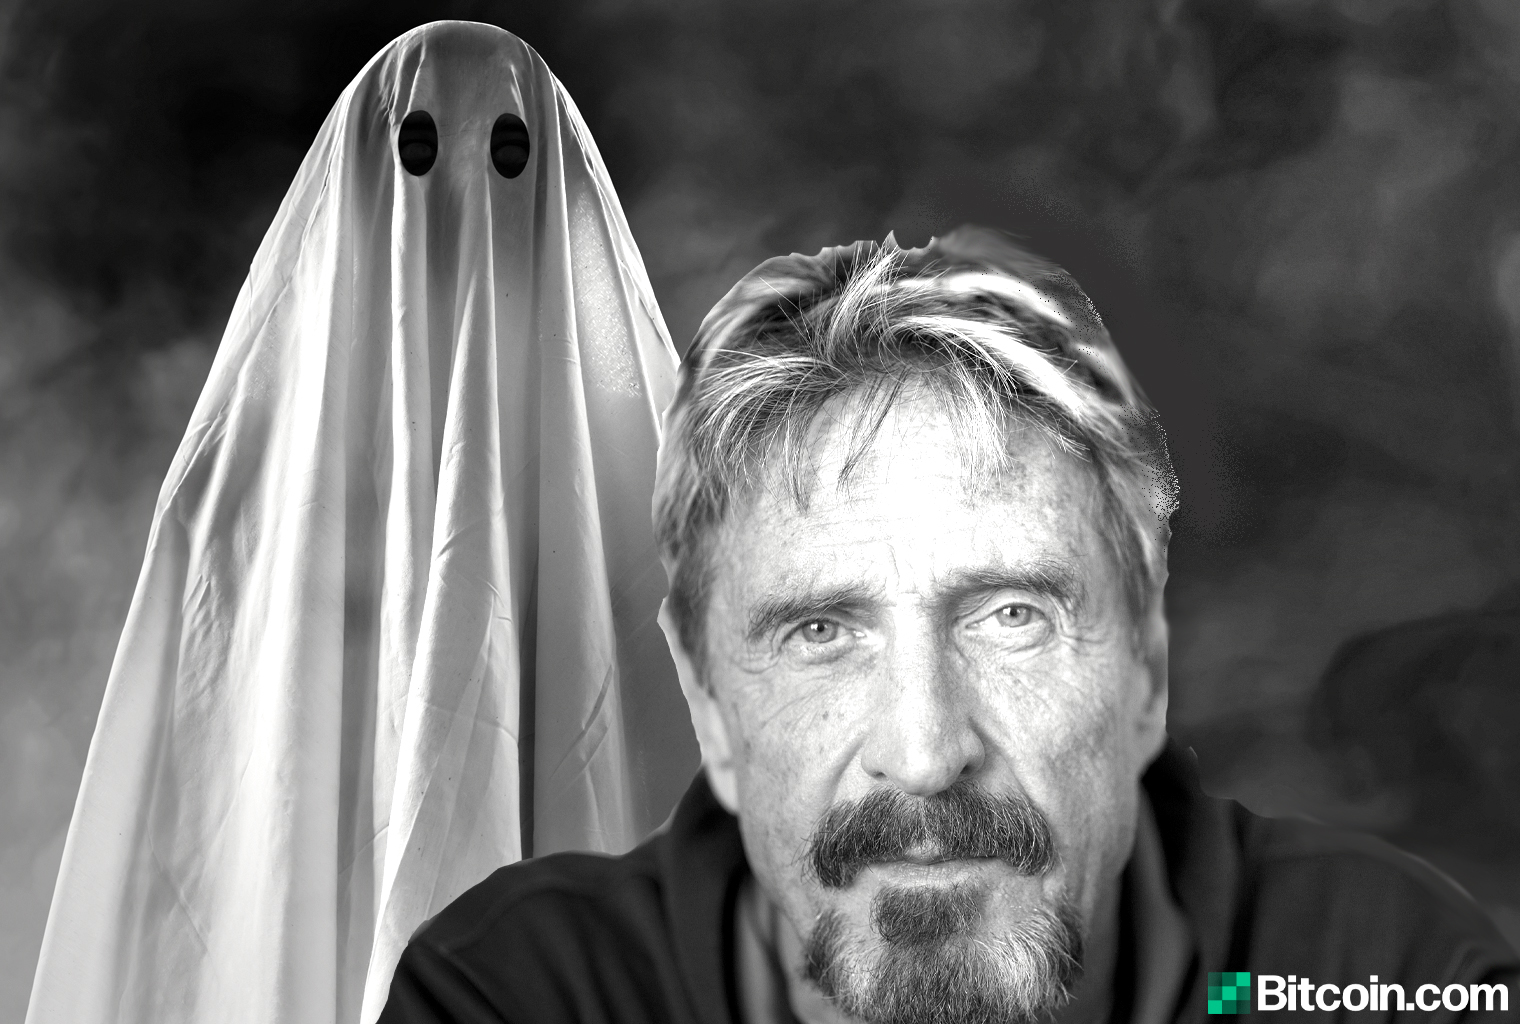 'Governments Will be Unable to Shut It Down' - John McAfee to Launch Privacy Centric Crypto